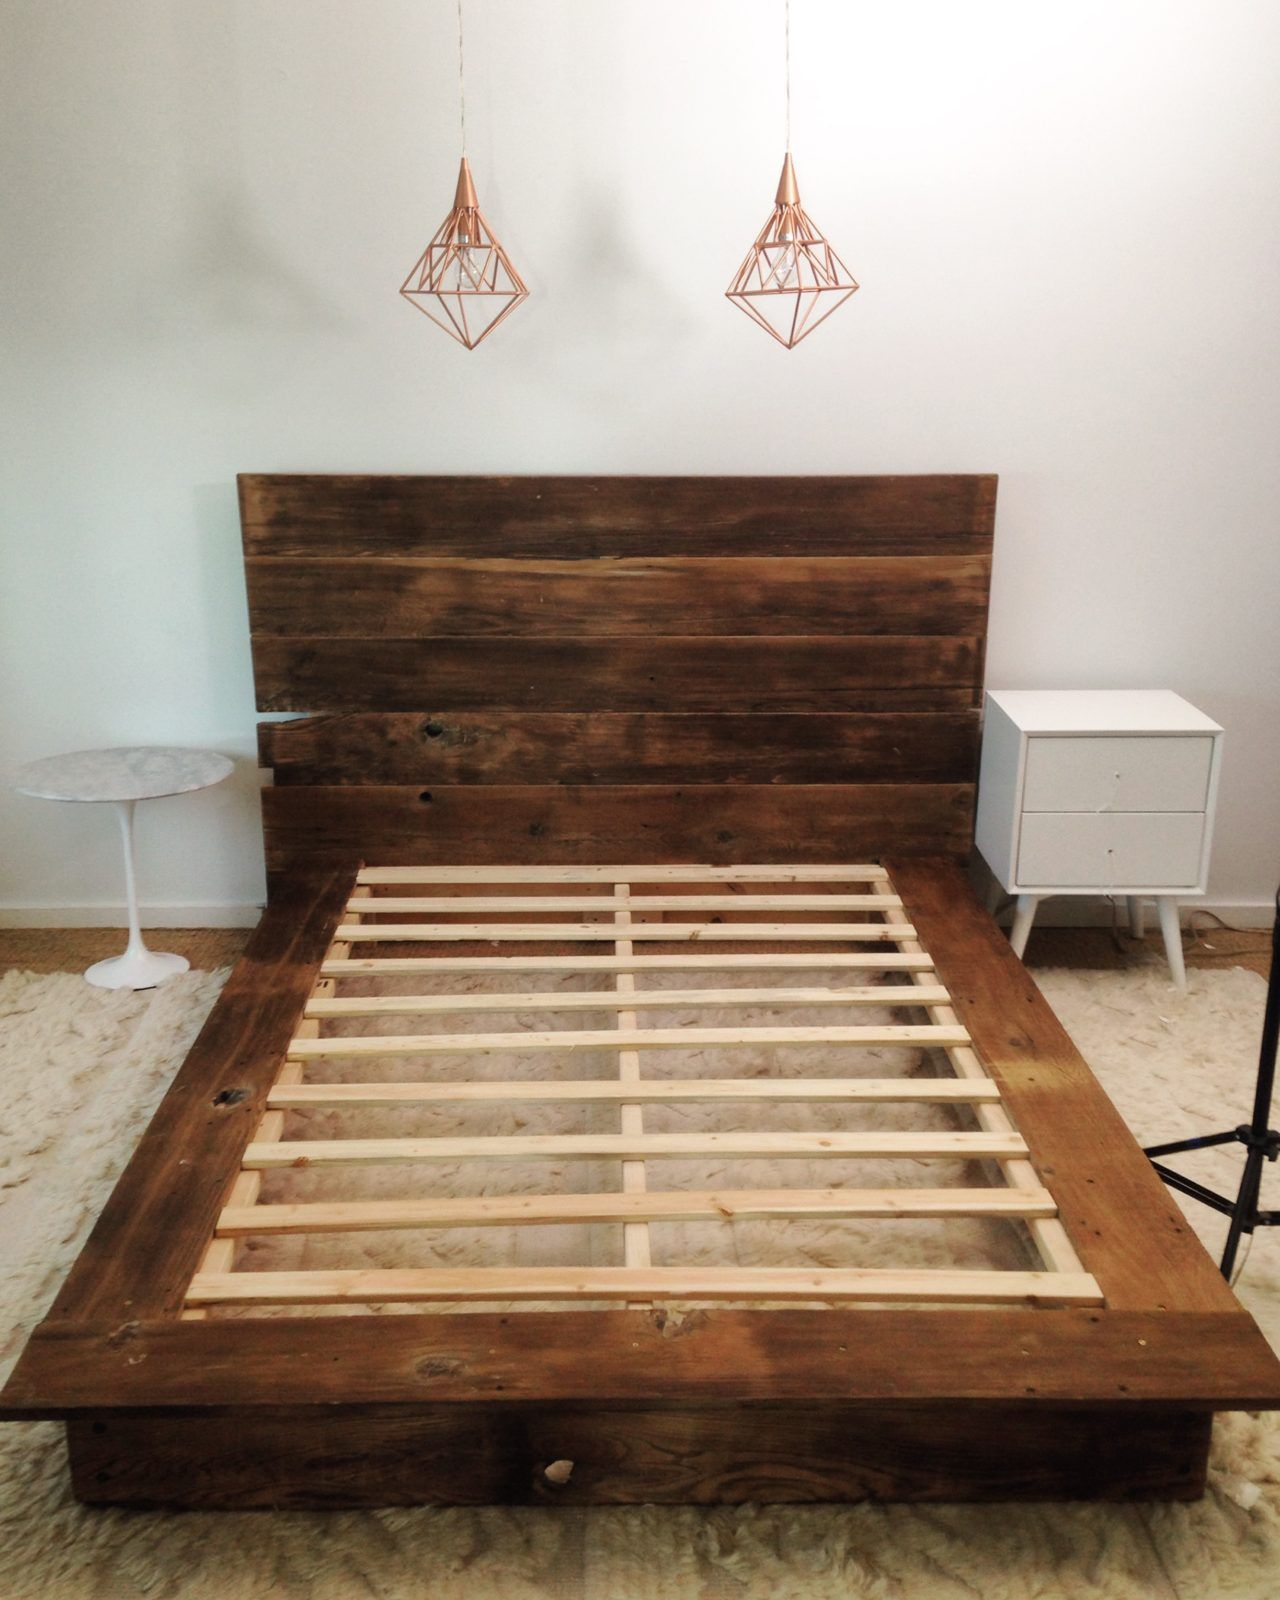 Diy Reclaimed Wood Platform Bed Diy Platform Bed Diy